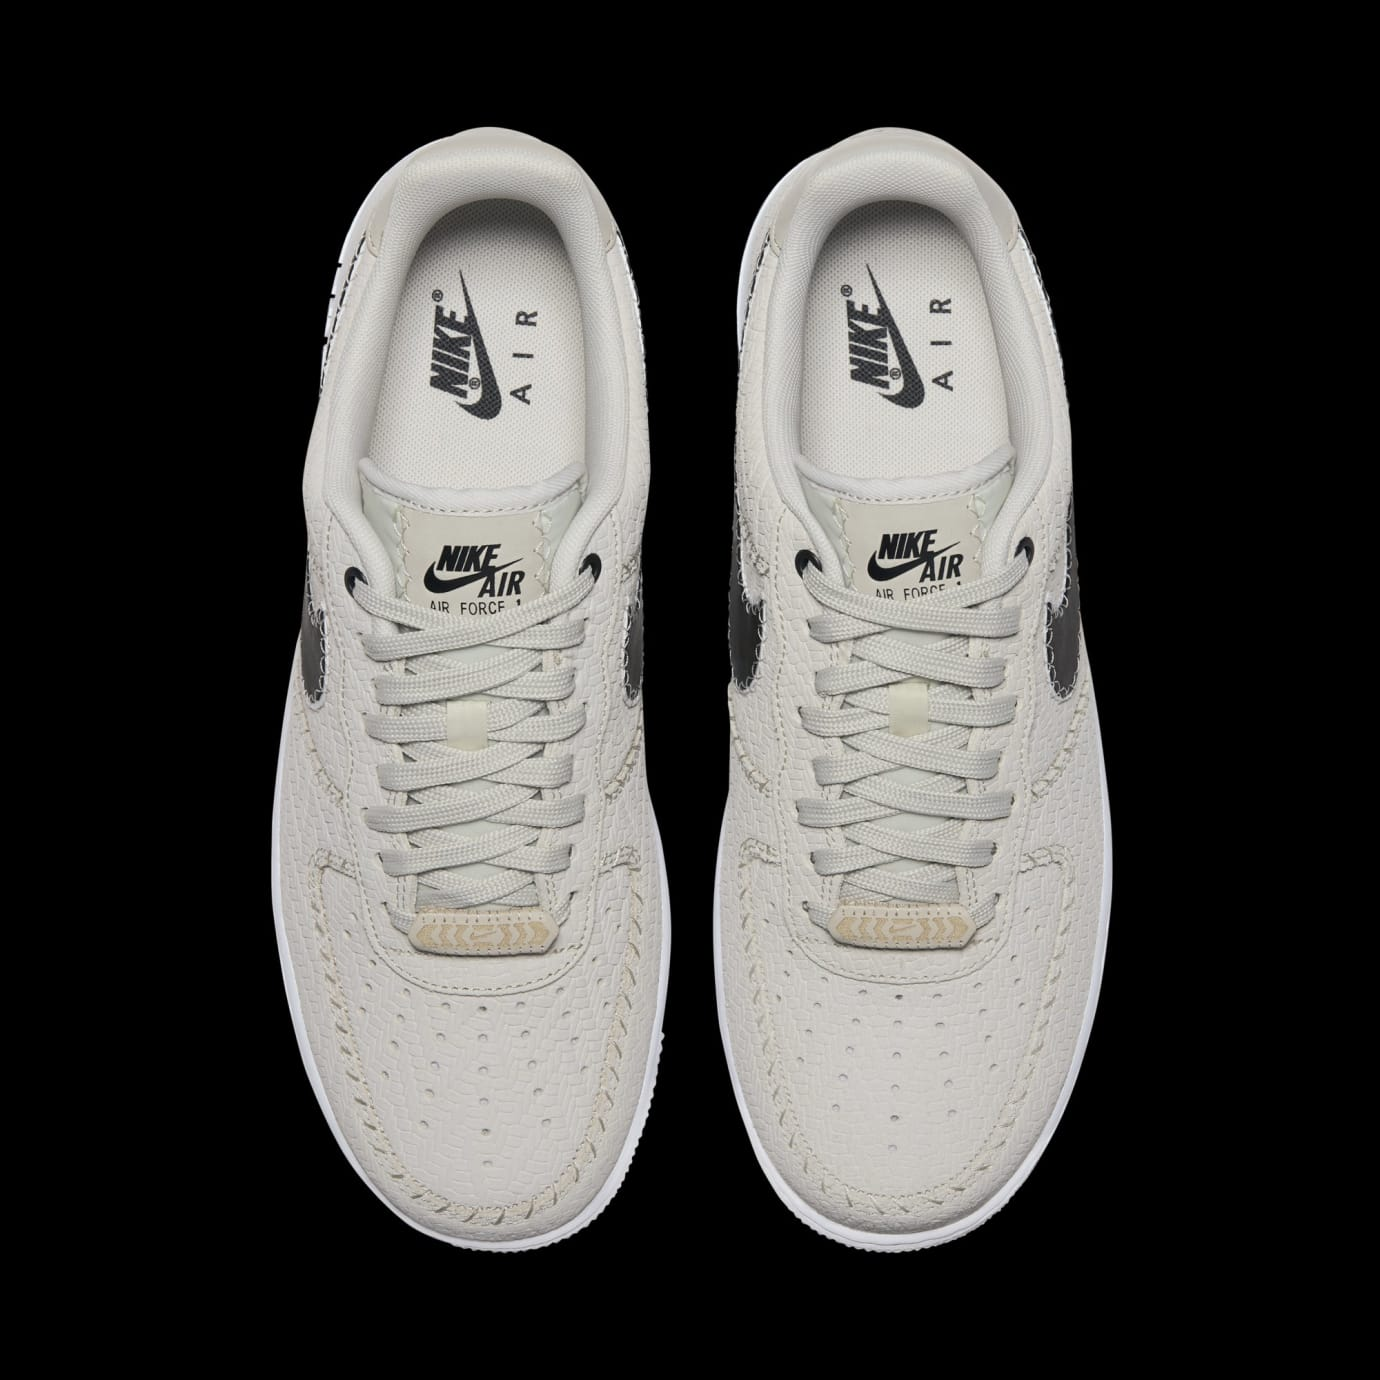 new style 7aad9 b4c81 Nike Air Force 1 Low 'N7' AO2369-001 Release Date | Sole Collector